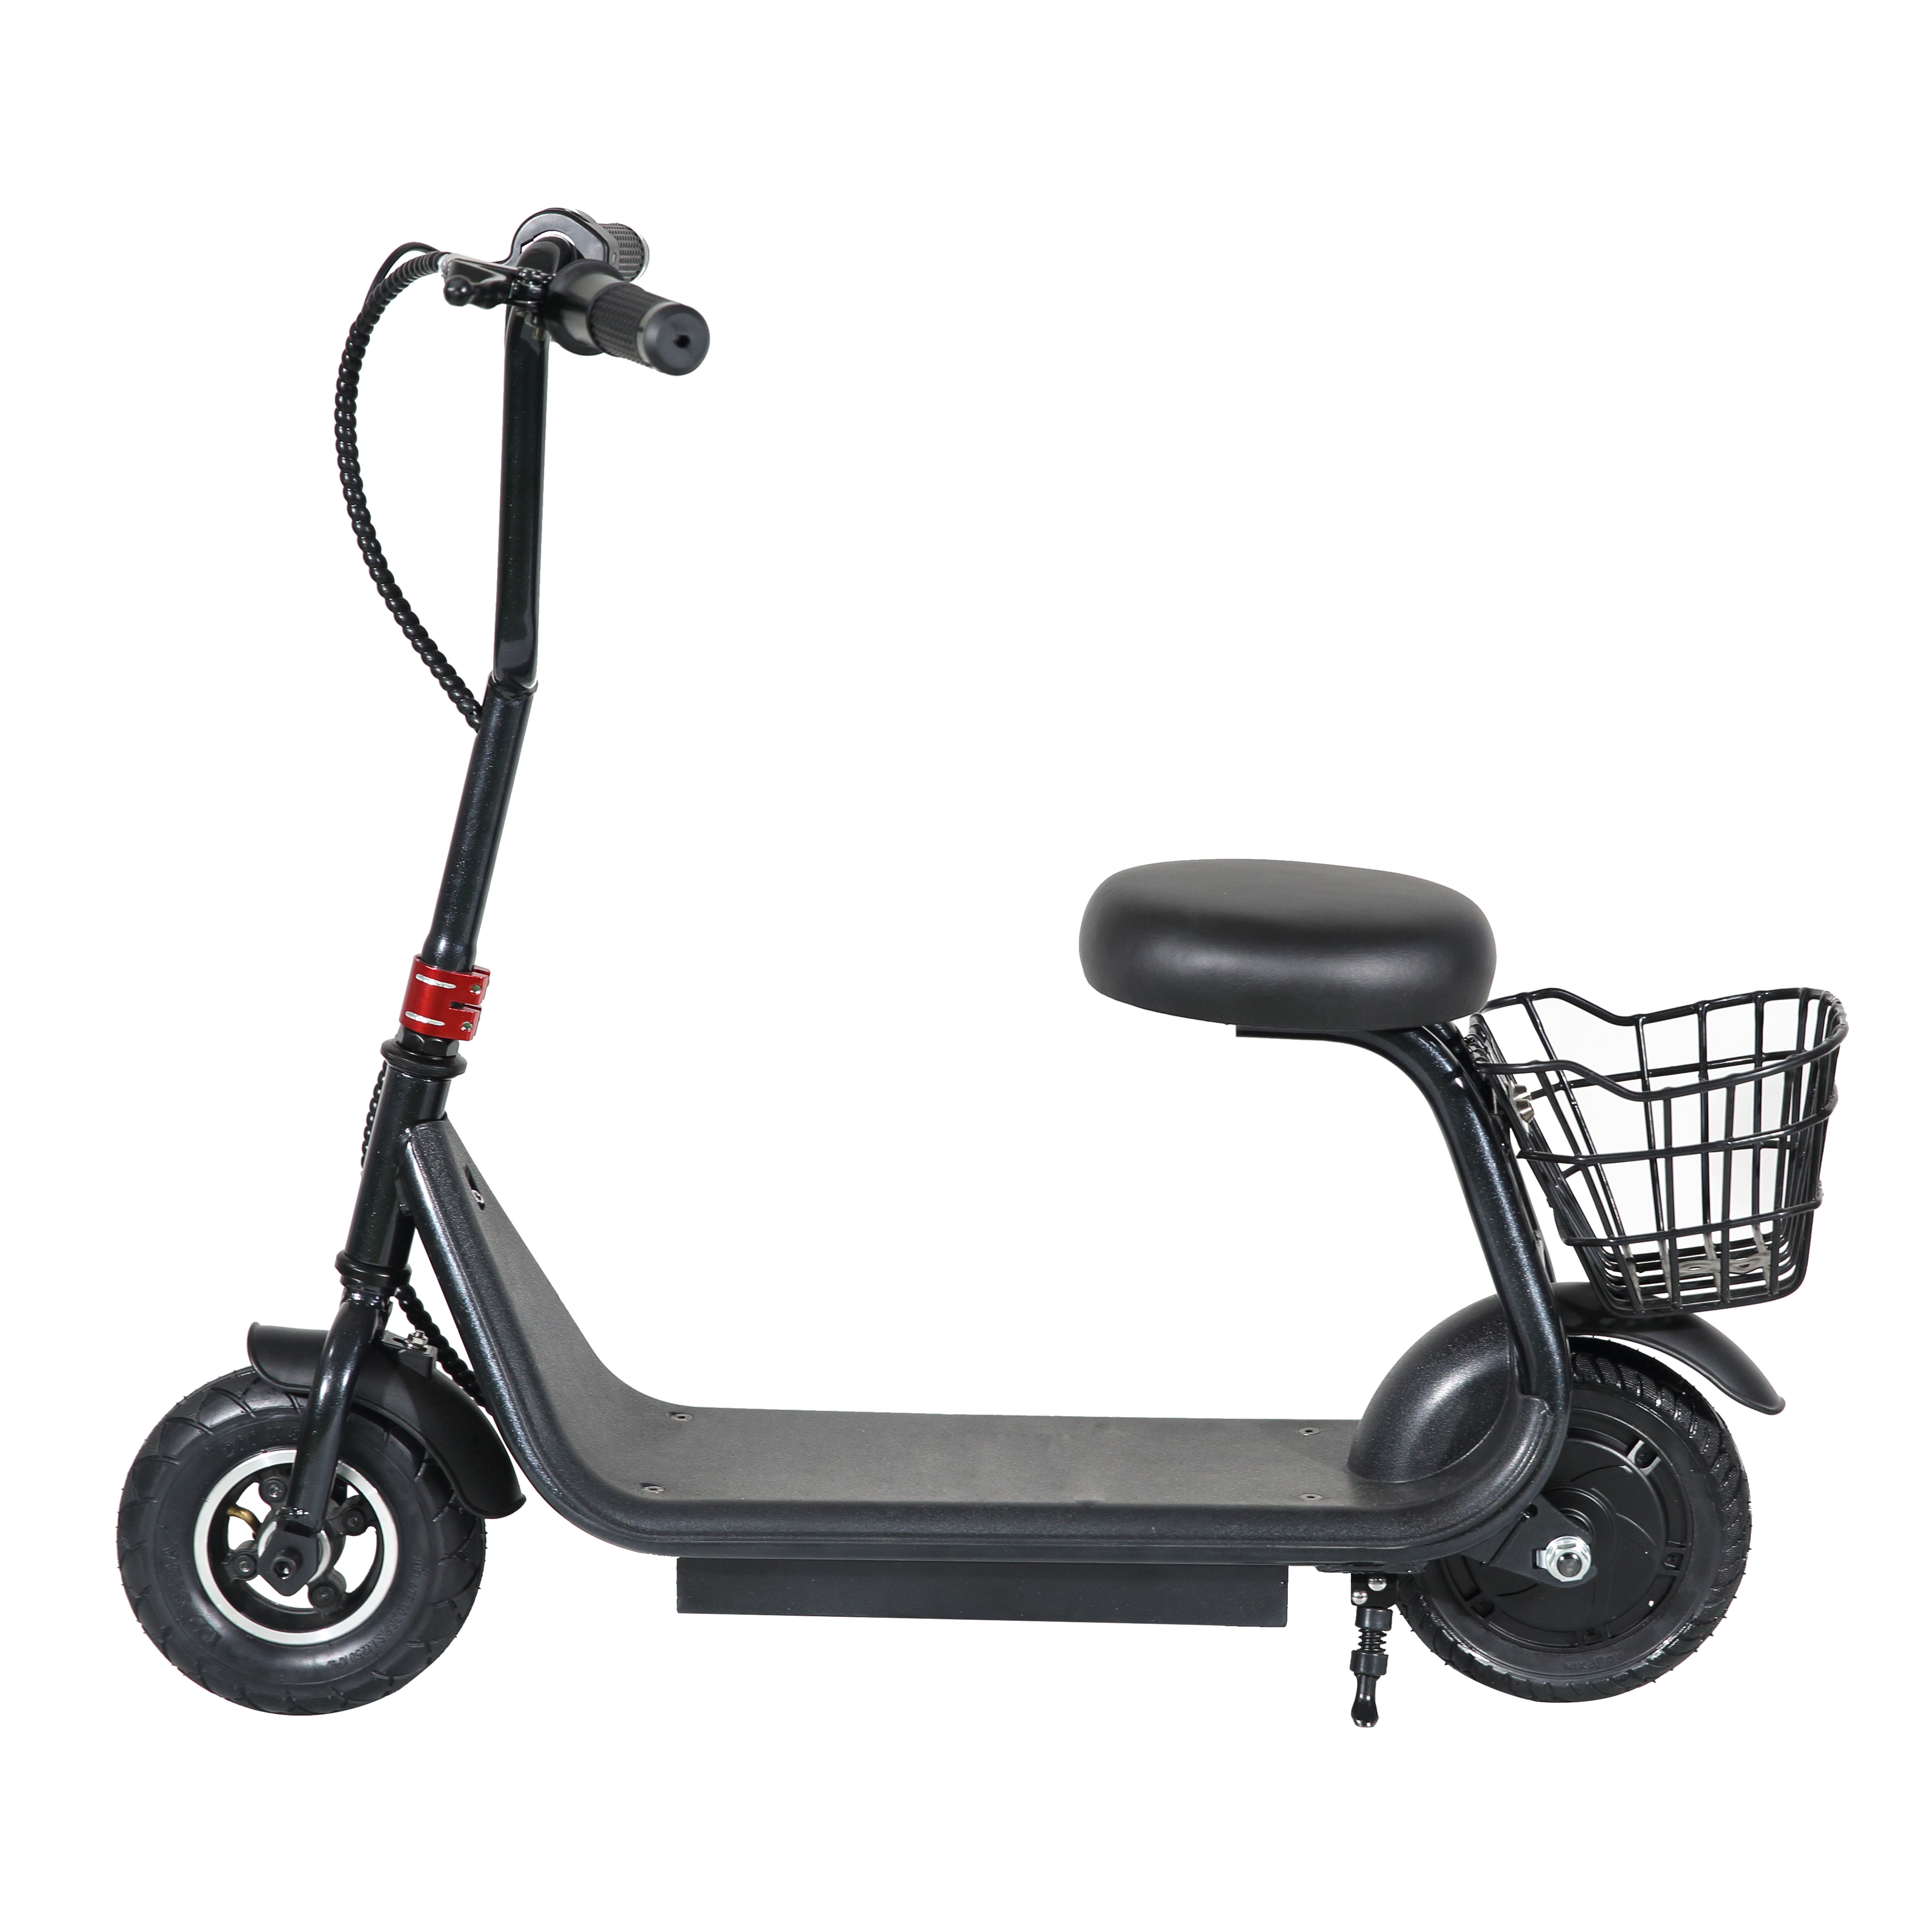 250W 4.4AH Citycoco scooter Electric for kids E Scooters M8 Scooter approved for road use